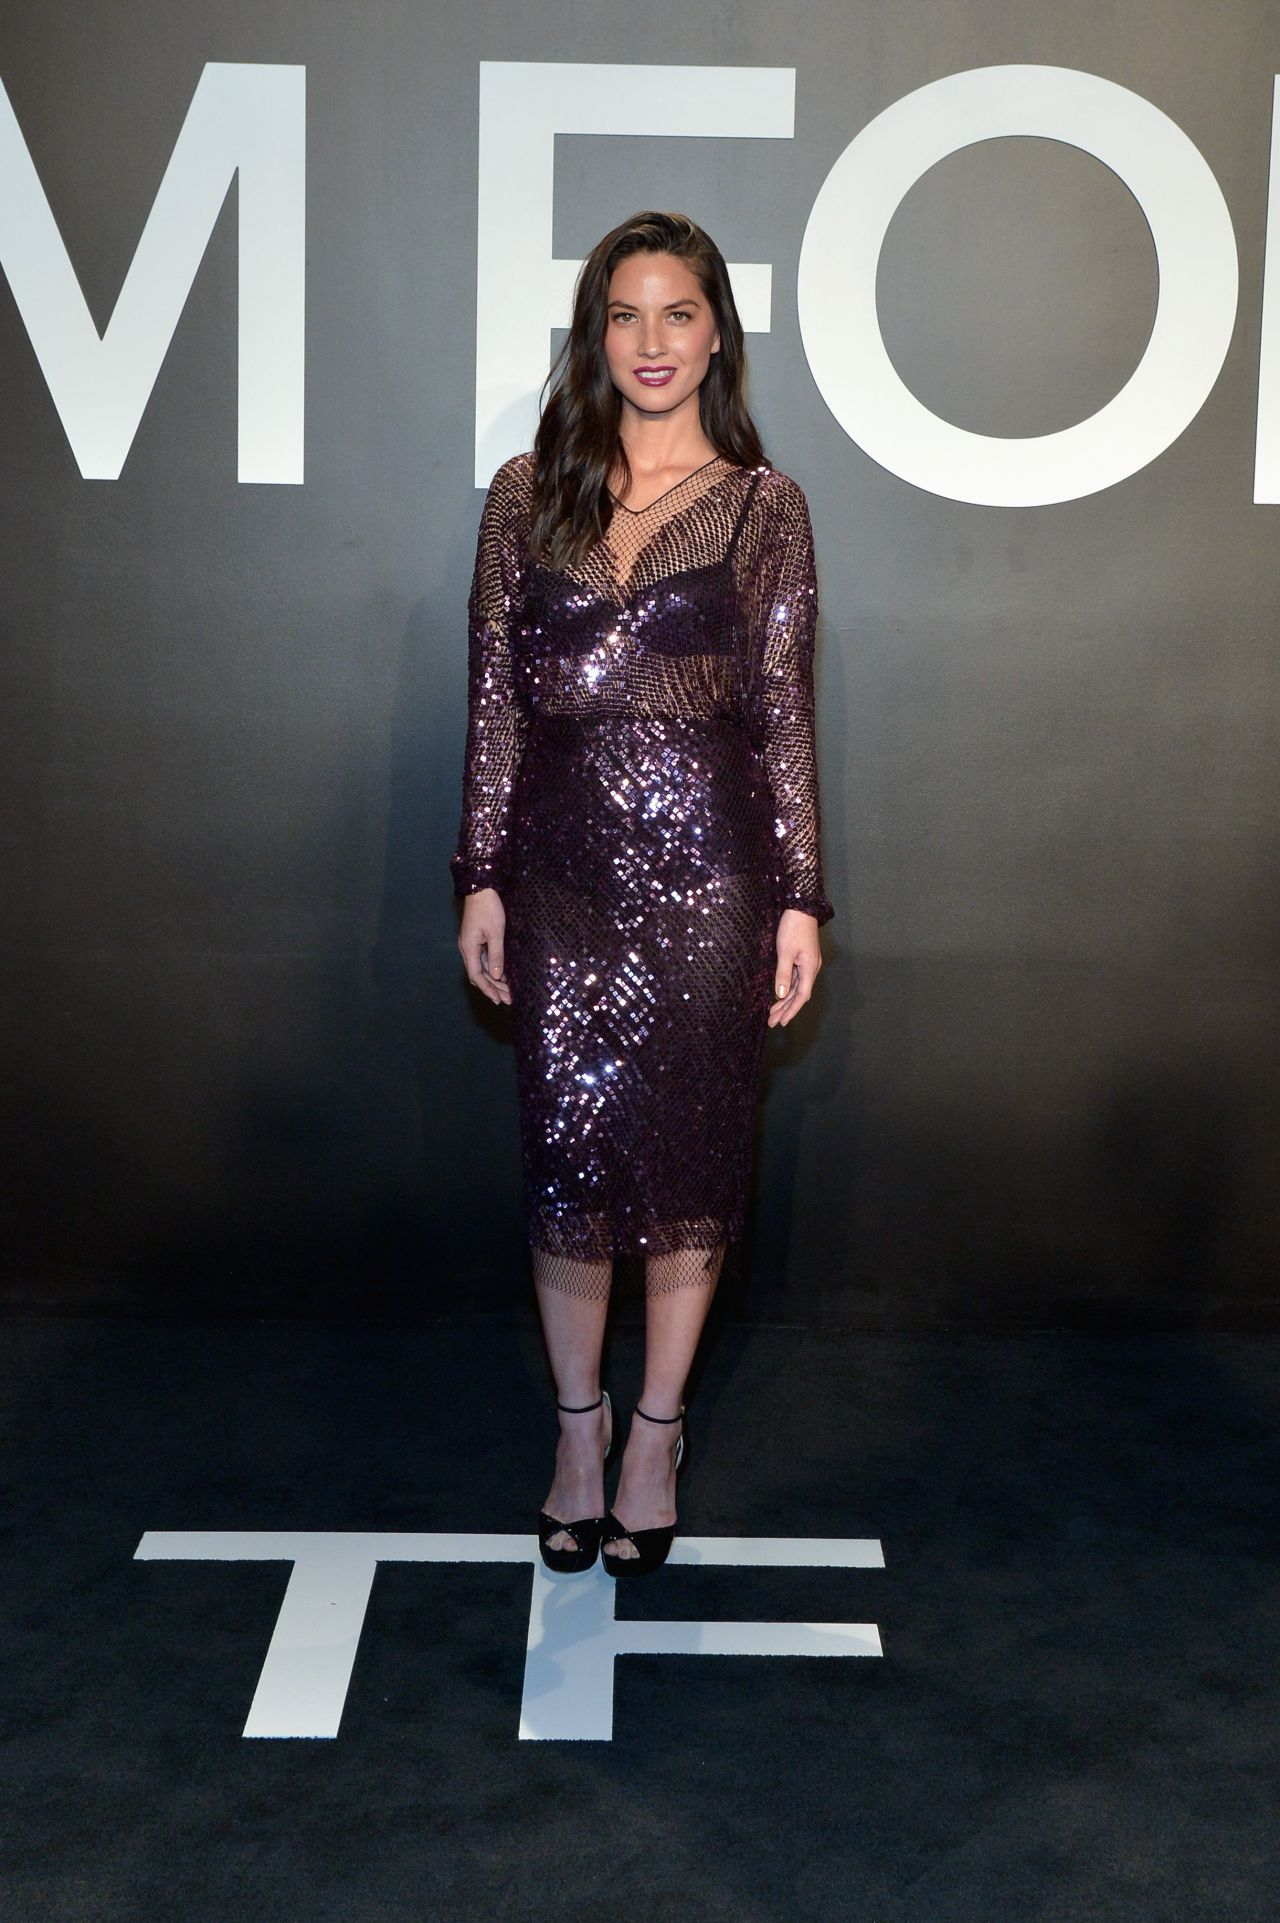 olivia-munn-tom-ford-autumn-winter-2015-womenswear-collection-presentation-in-los-angeles_4